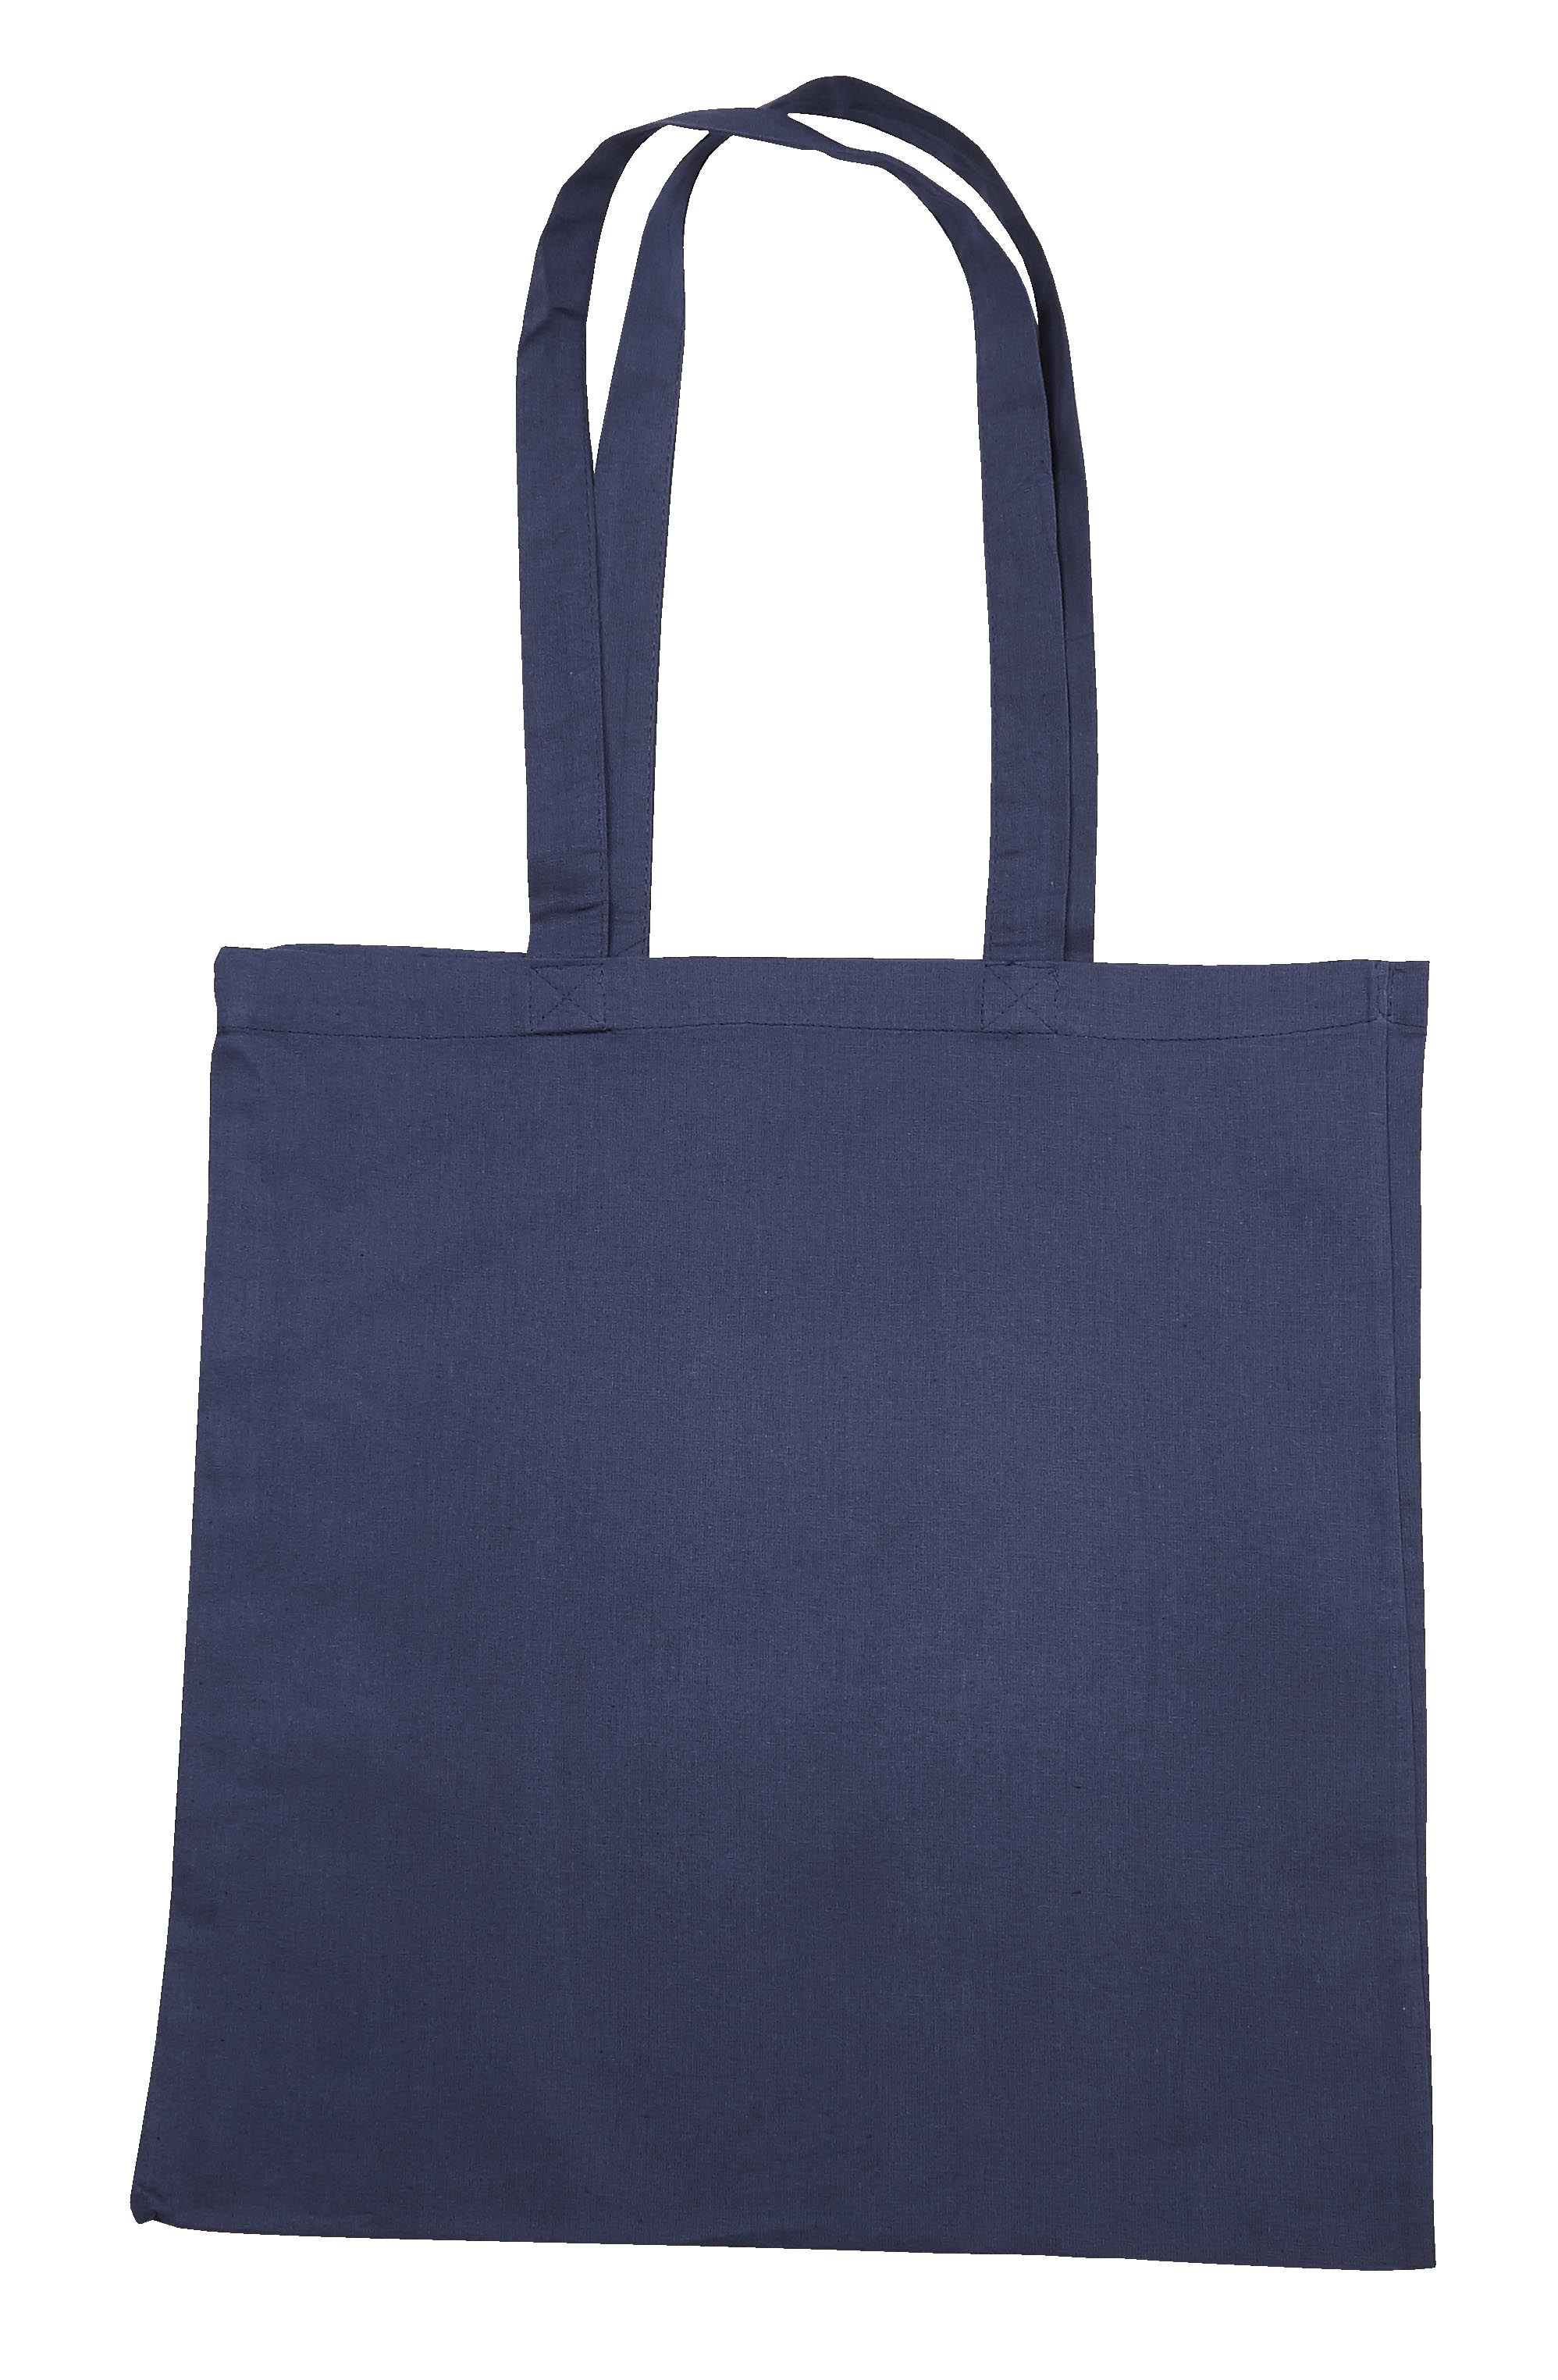 Navy Blue Jute Cotton Shopper Bag